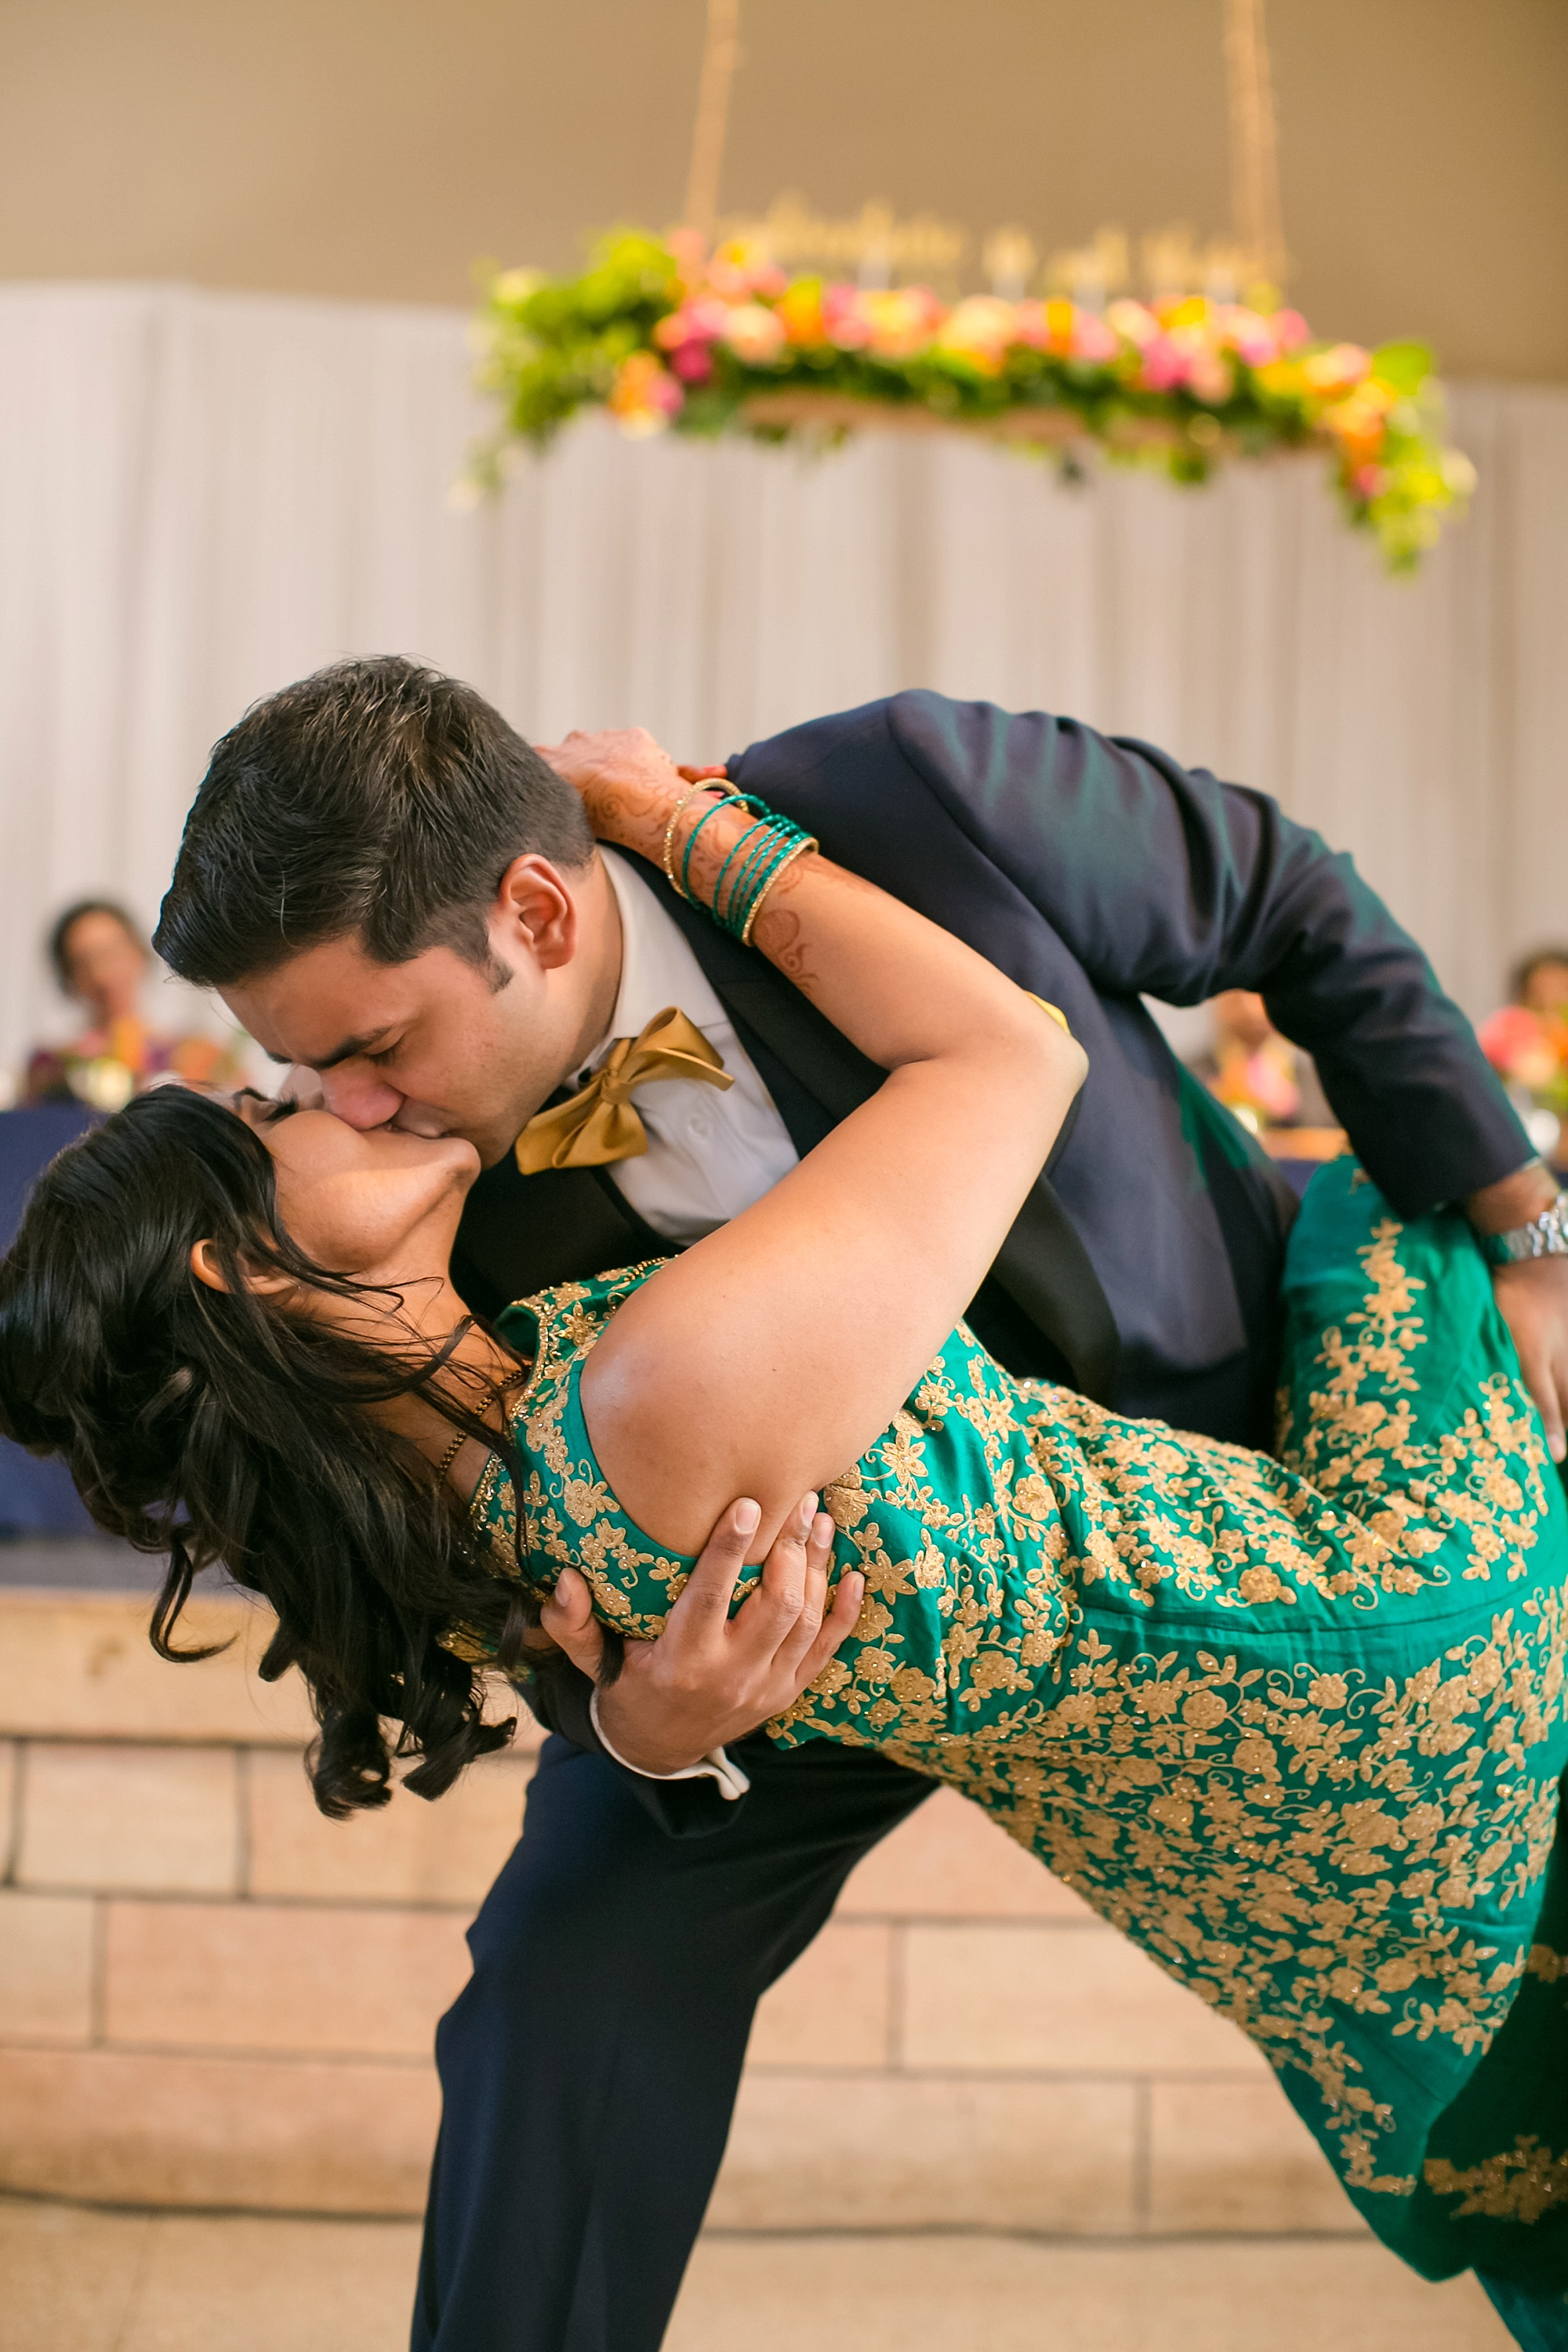 Vendors: Photographer:  Jeannine Marie Photography  | Planner:  Kerry , The Simply Elegant Group | Ceremony:  Hindu Temple in Maple Grove  | Next Day Reception:  Harriet Island Pavilion in St. Paul  | Caterer:  India Palace  | Serving Staff:  Big 10 Catering  | Bartenders:  With a Twist  | Cake:  Miss Sara's Cakery  | Hair/Makeup:   Mani Mela  | DJ : Sharabi | Florist : Whimsy  | Cafe Lighting:  Festivities  | Photobooth:  VIP Photo Booth